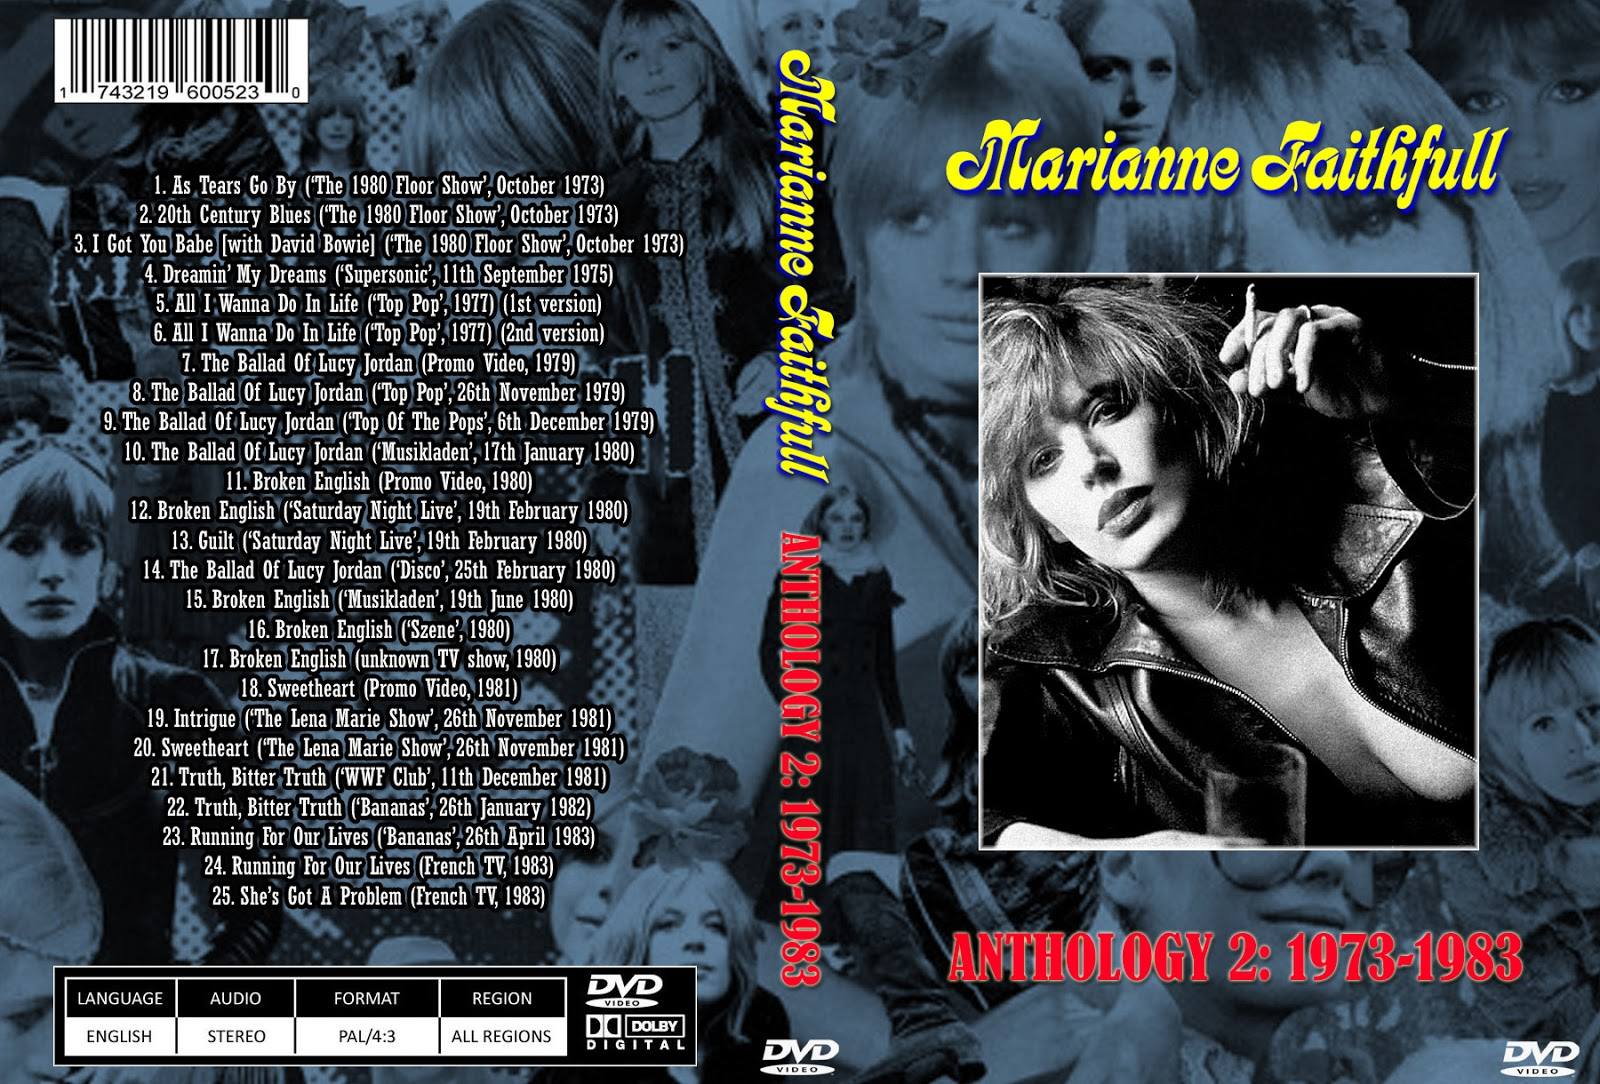 Music tv and video archives marianne faithfull on dvd wanted more marianne faithfull 1964 1983 era preferred thecheapjerseys Gallery